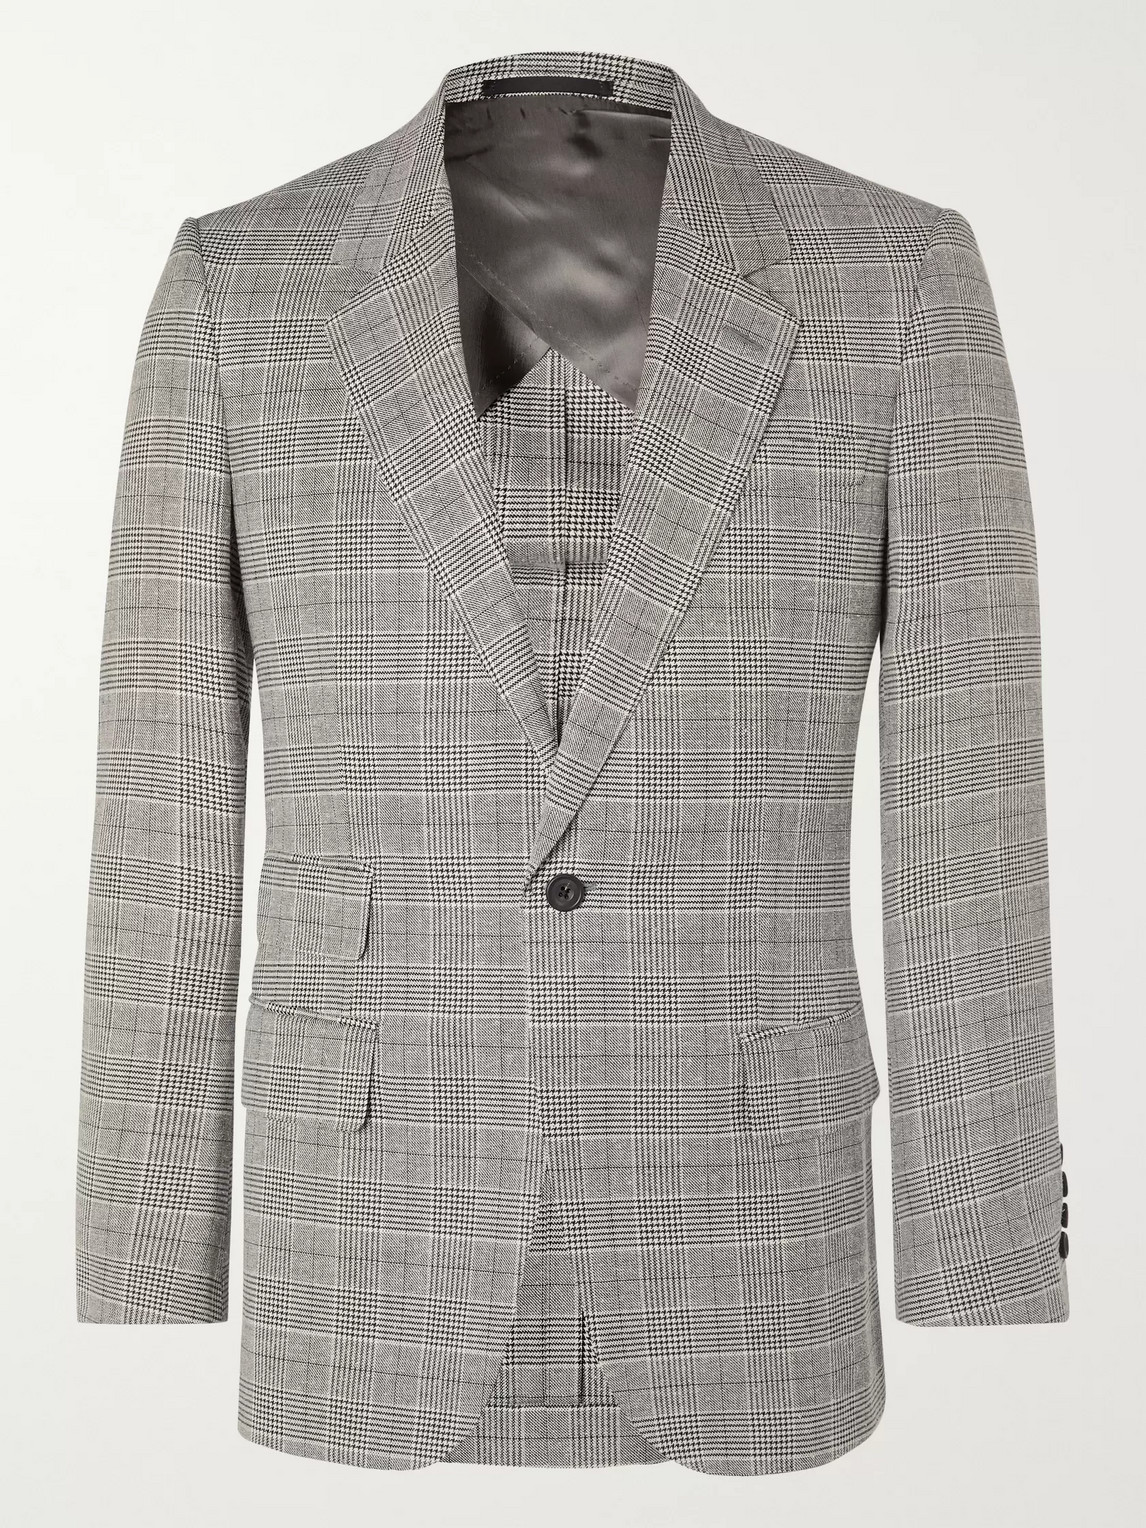 Kingsman Arthur Harrison Prince Of Wales Checked Suit Jacket In Black